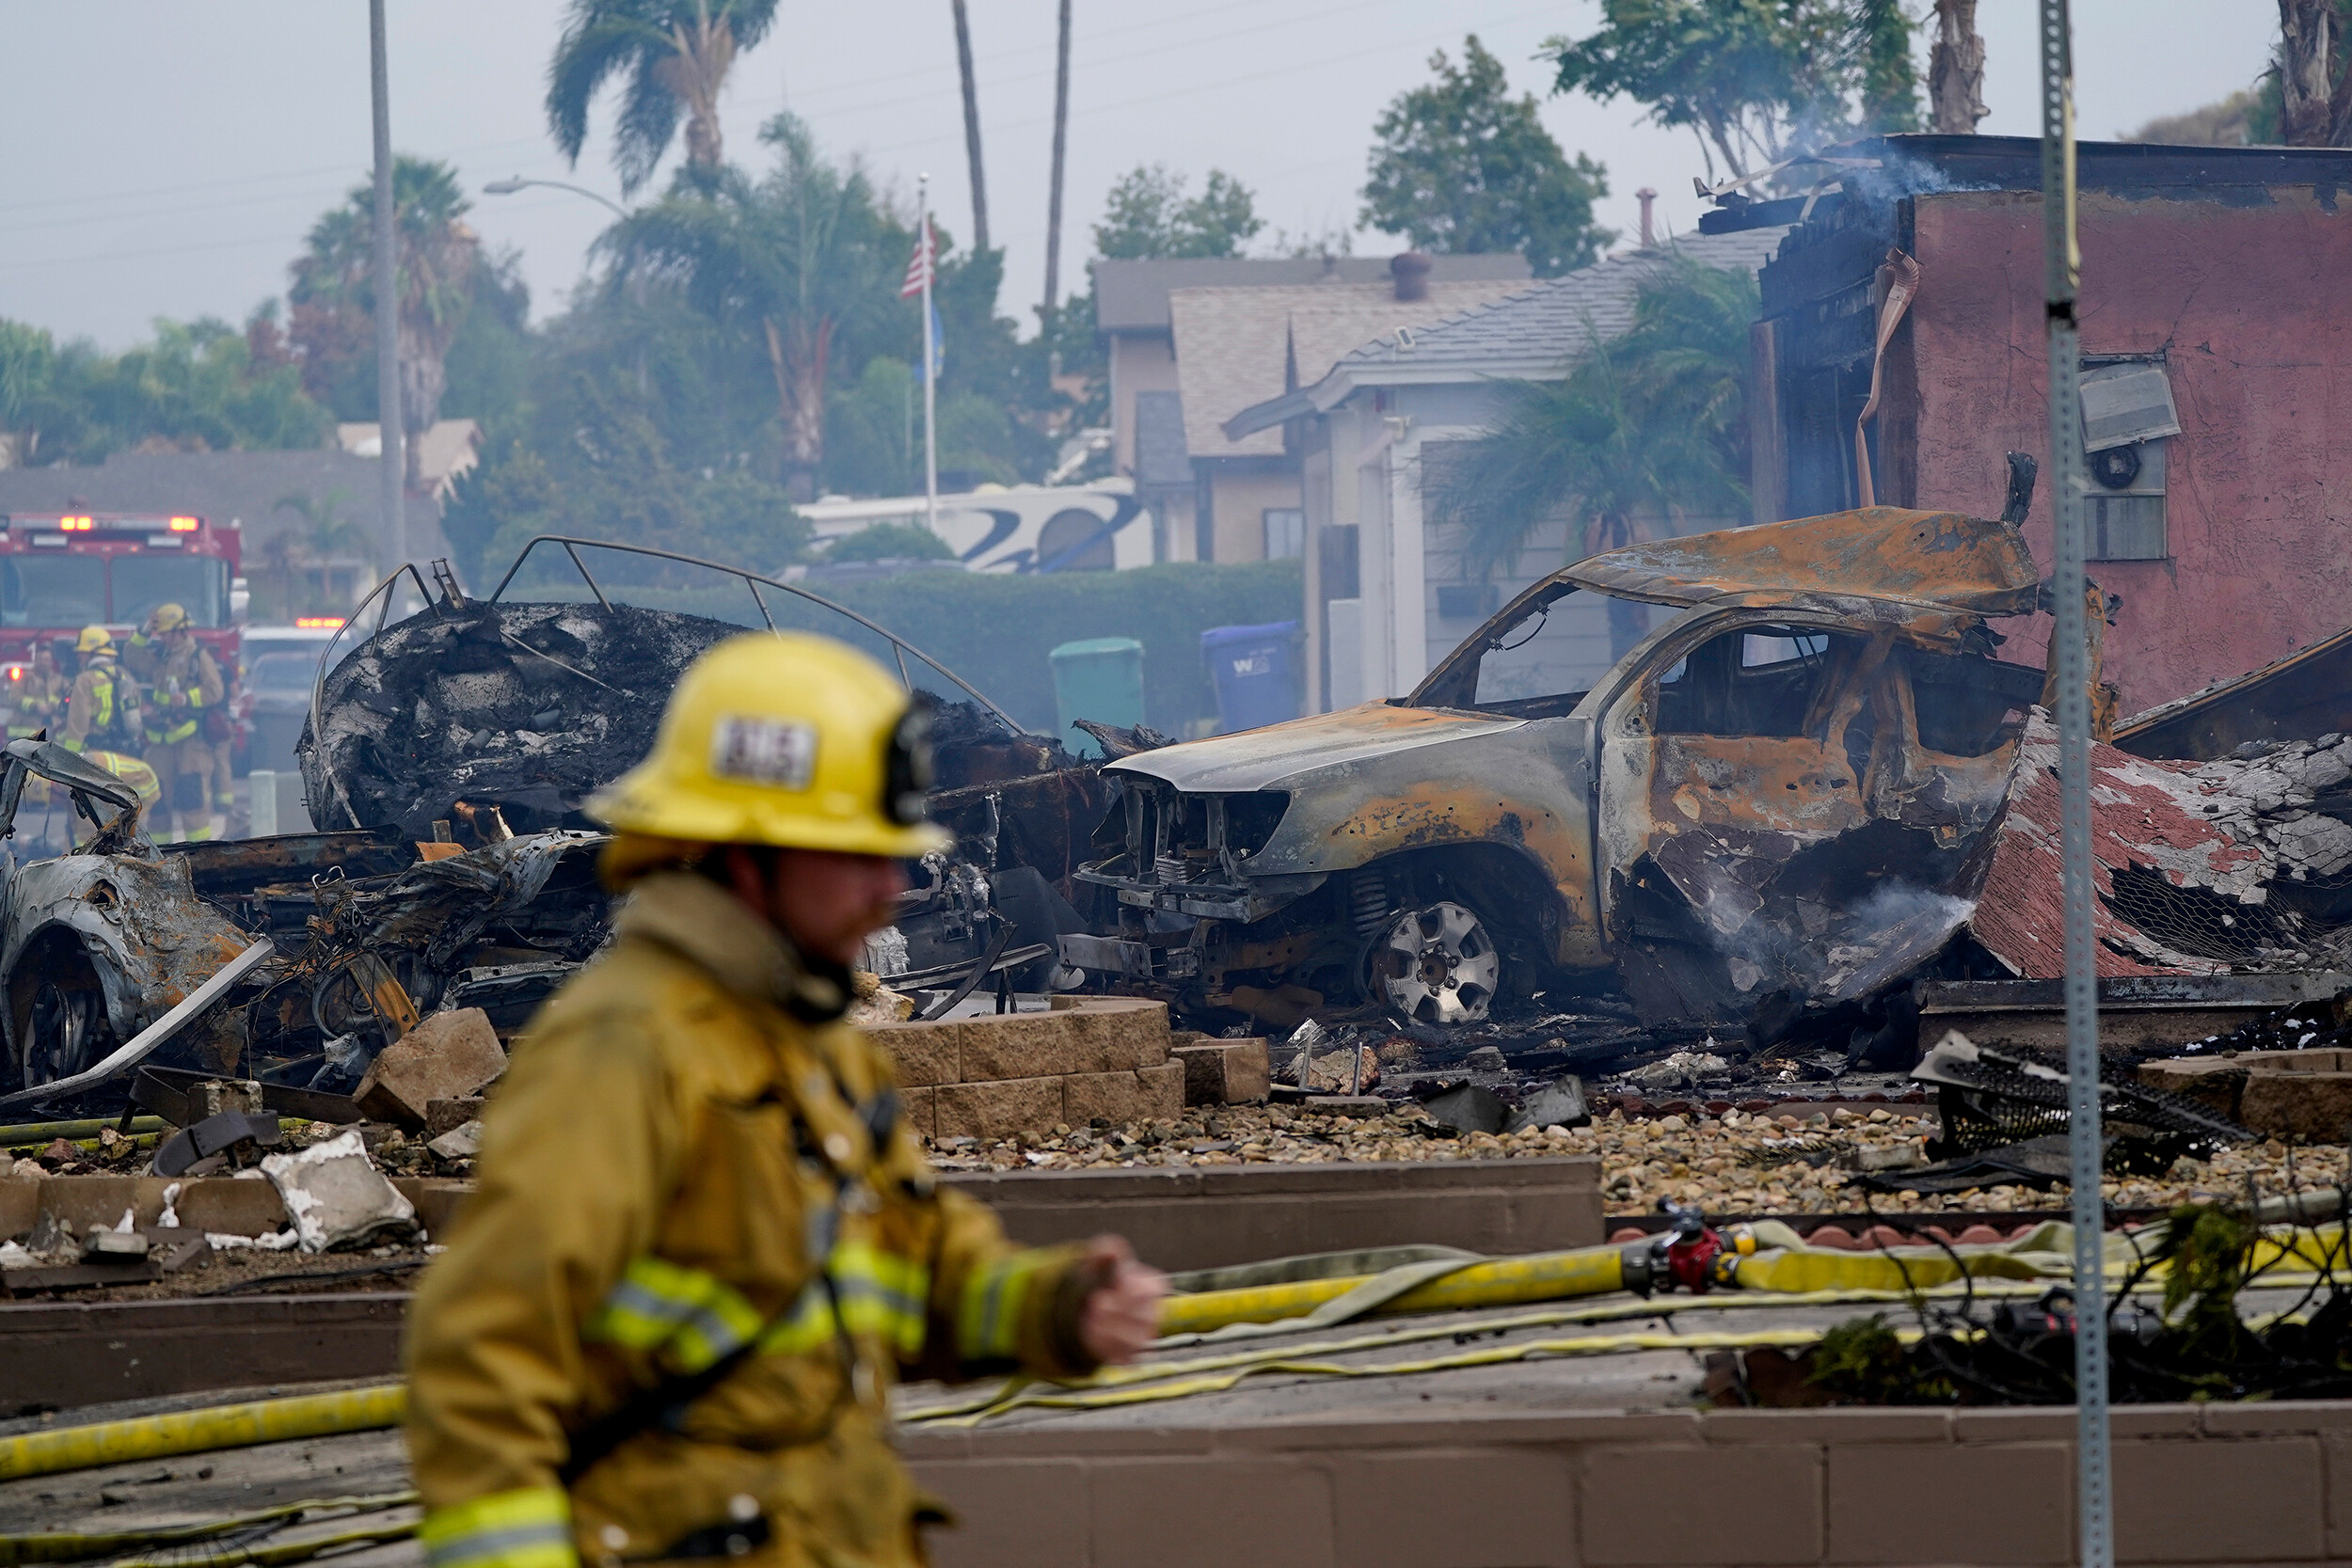 UPS driver among at least two killed after small plane crashes in Southern California neighborhood